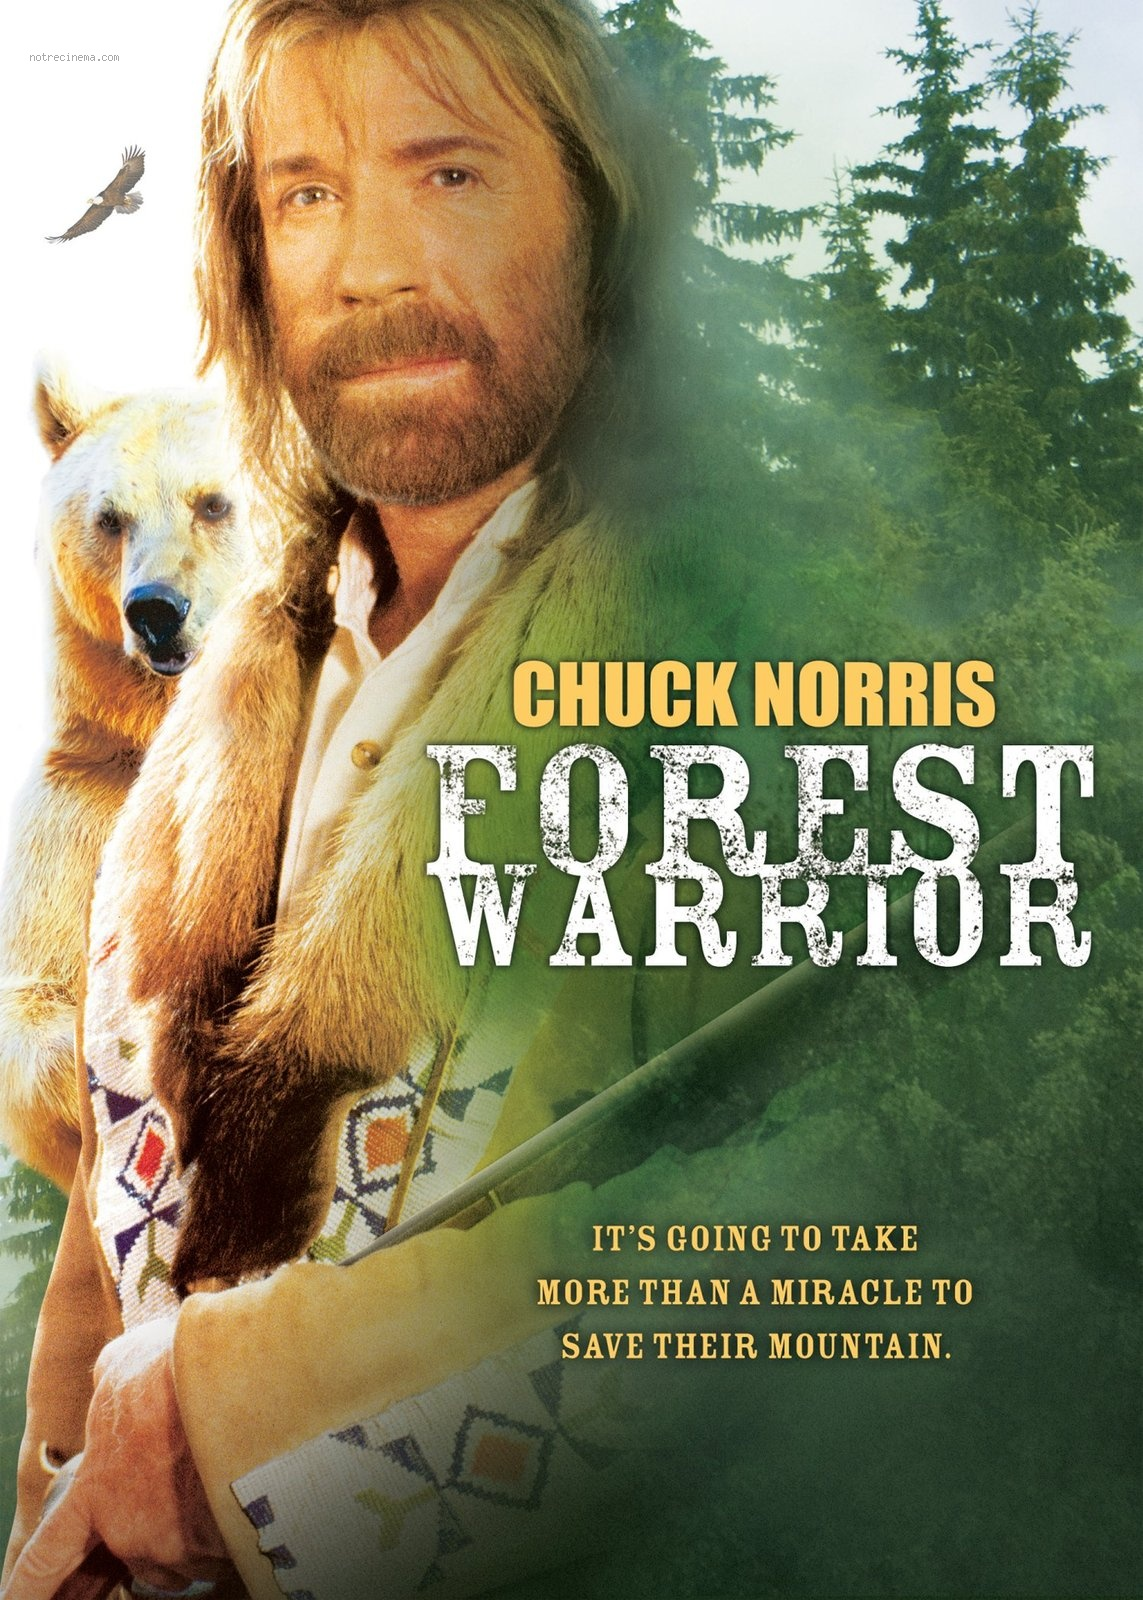 day of the warrior 1996 full movie online